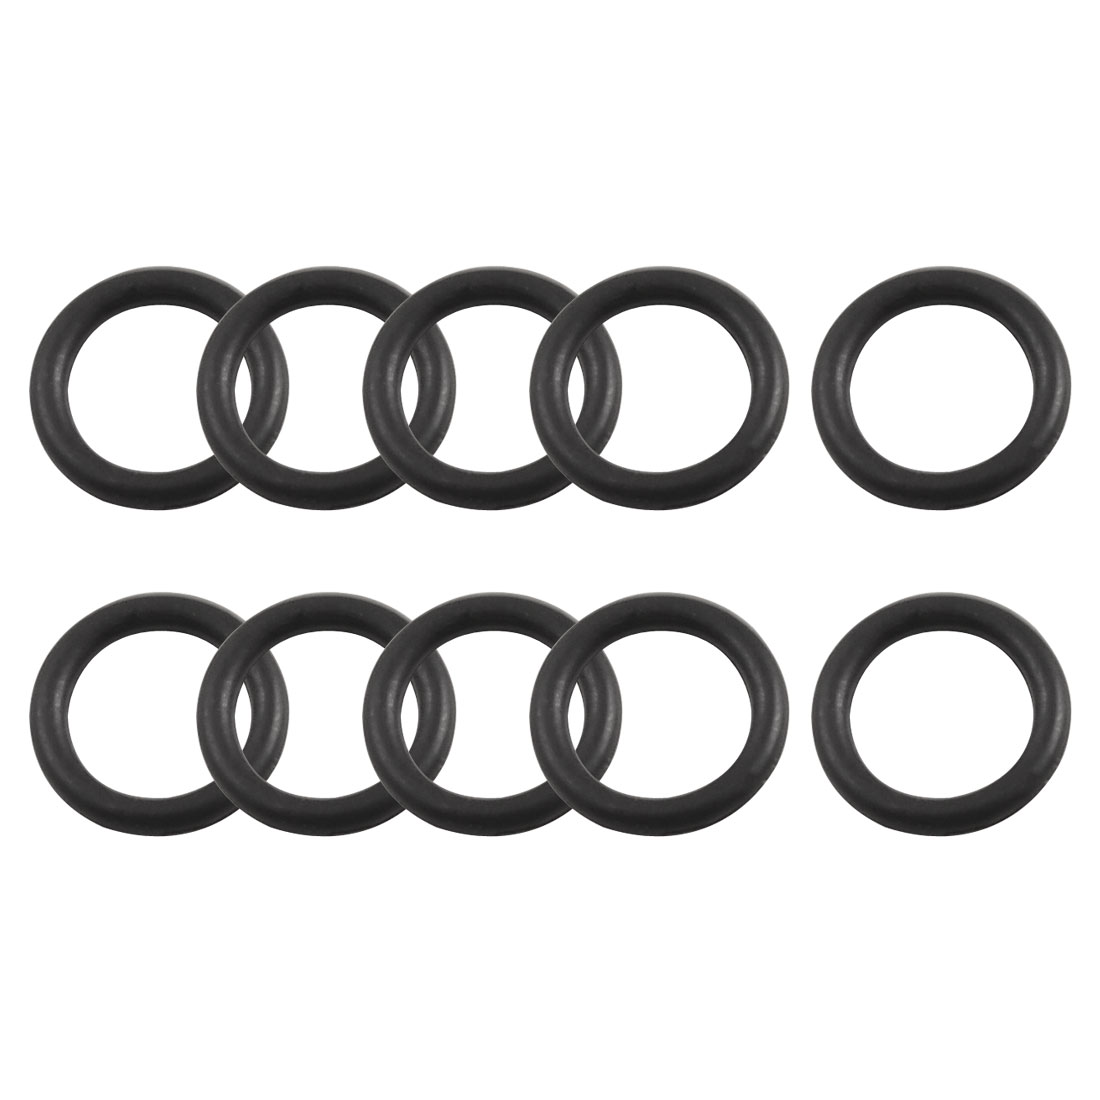 10 Pcs Black Rubber O Ring Oil Filter Sealing Gasket 6.9mm x 1.8mm